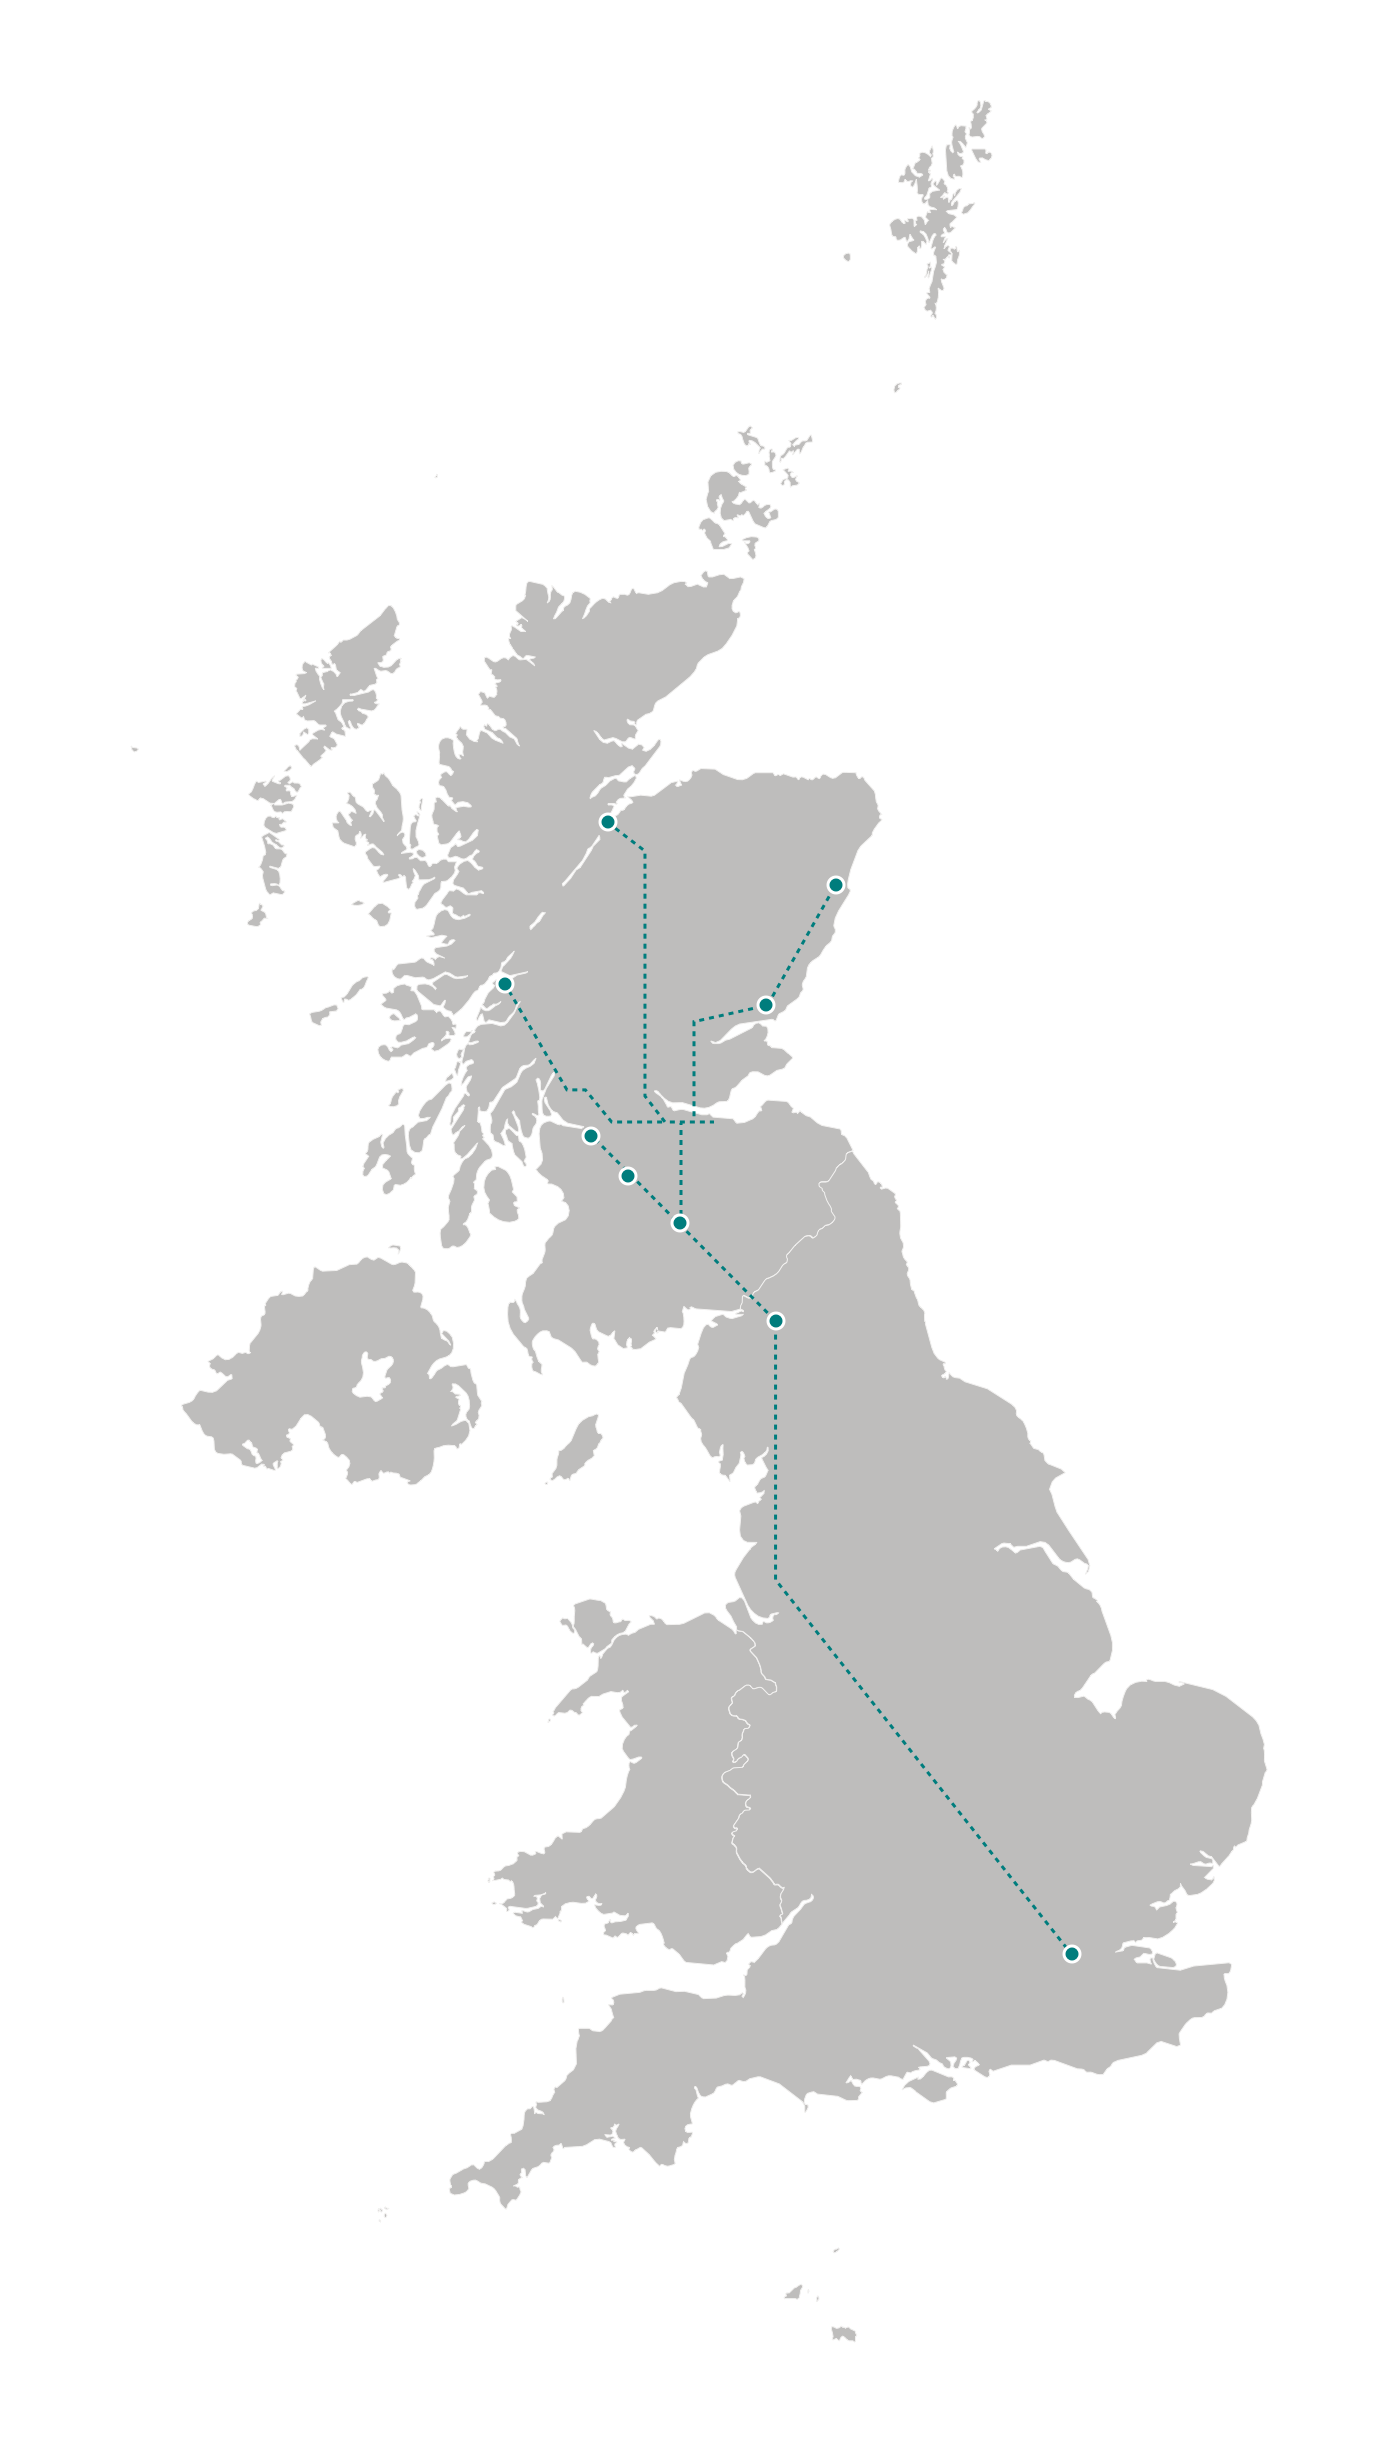 Caledonian Sleeper routes